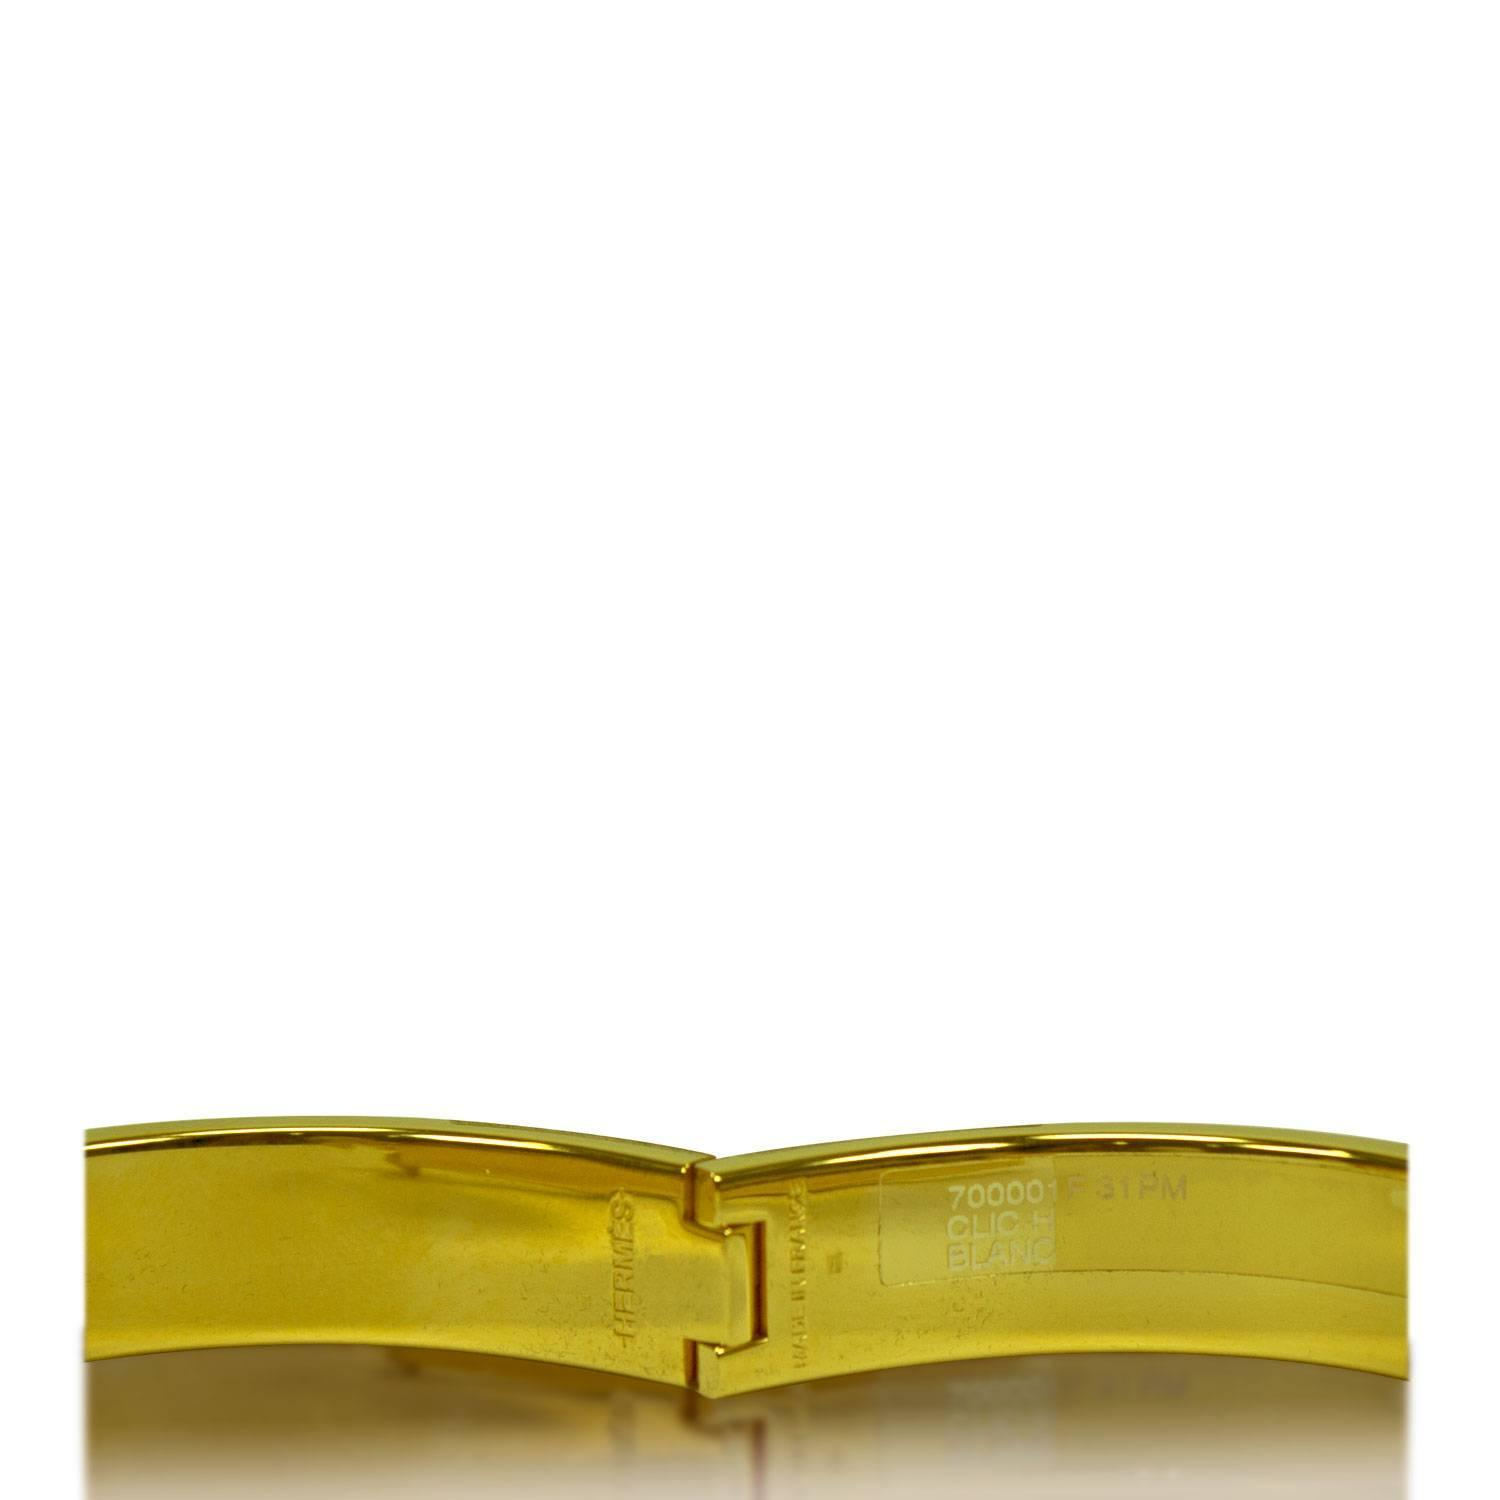 hermes bracelet clic clac h gold enamel white color pm heigth 2016 at 1stdibs